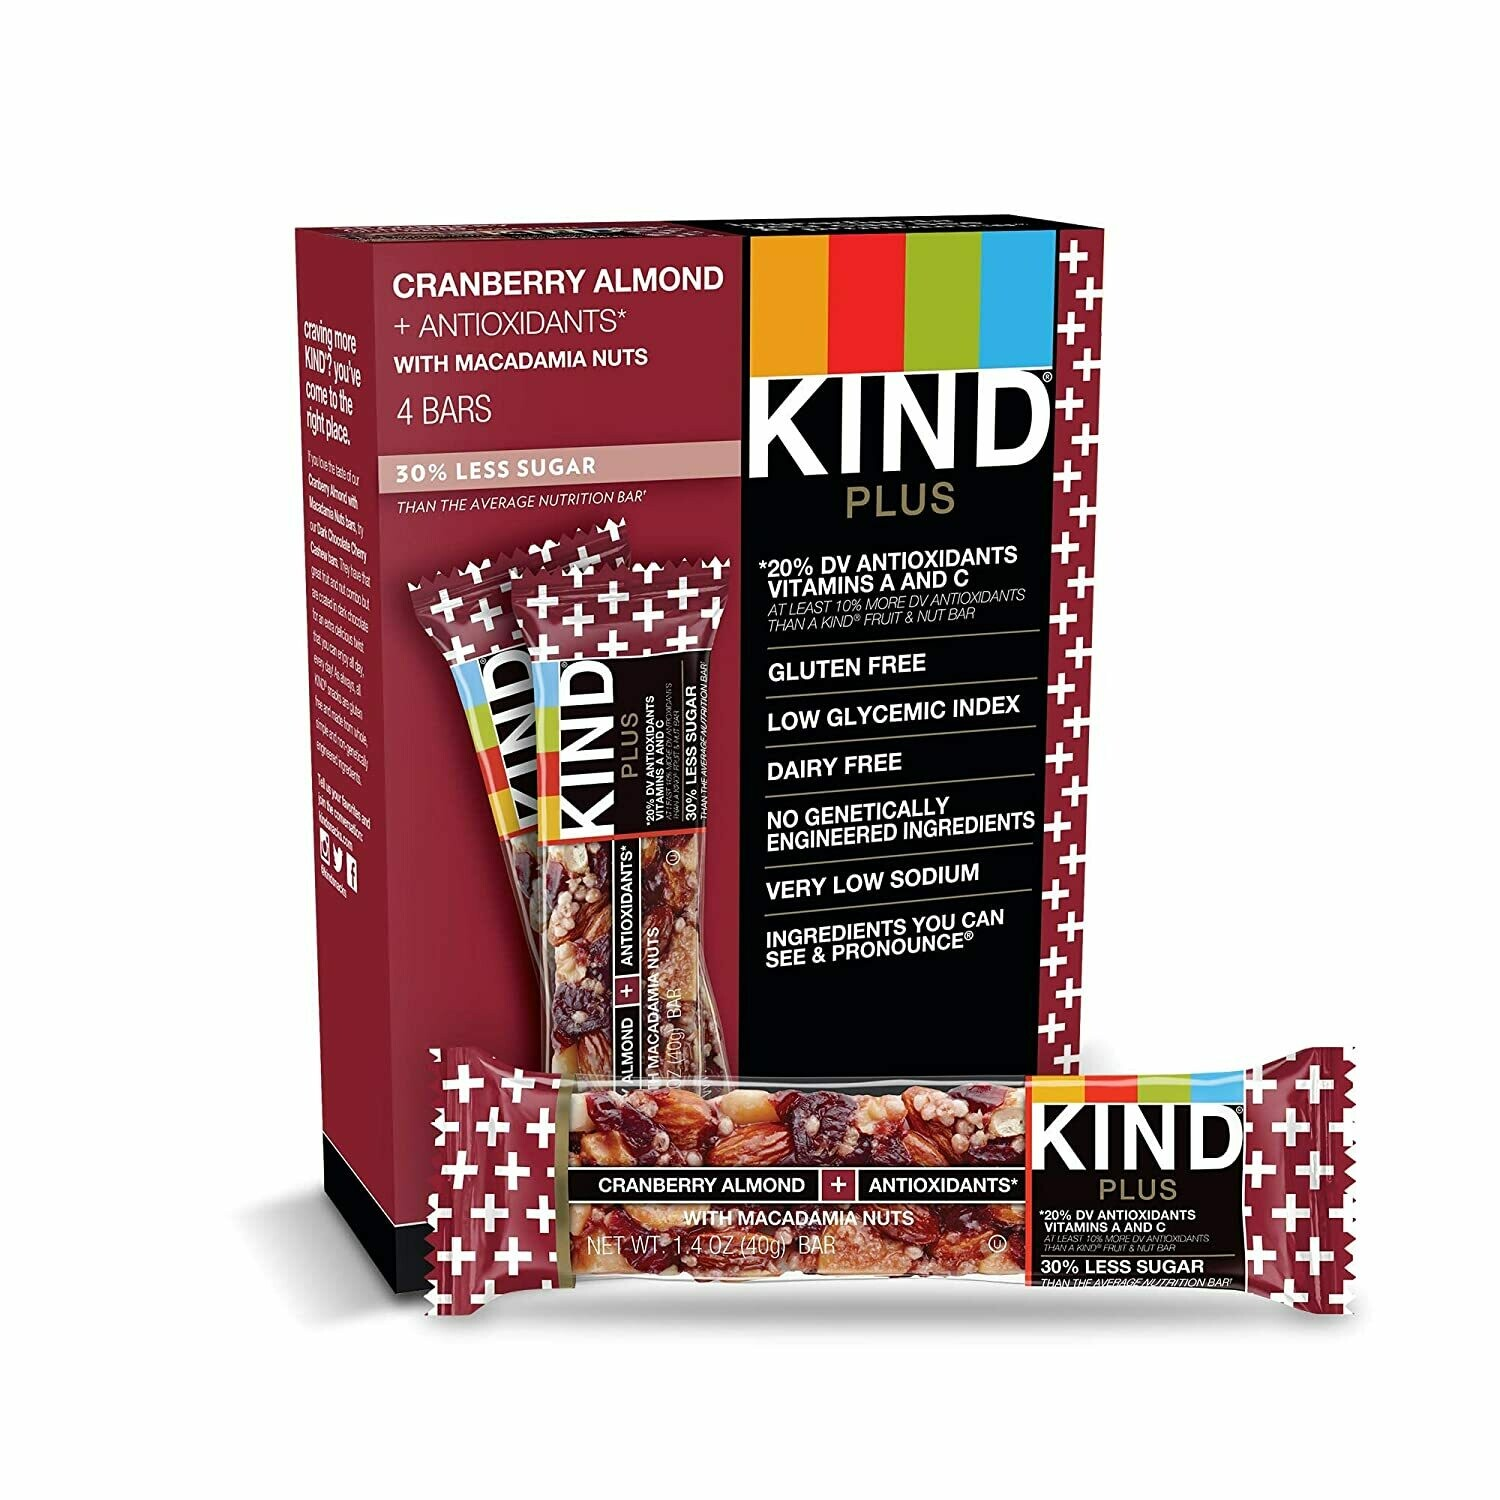 * Kind Plus Cranberry & Almond + Antioxidants Bars 12-1.4 Ounces